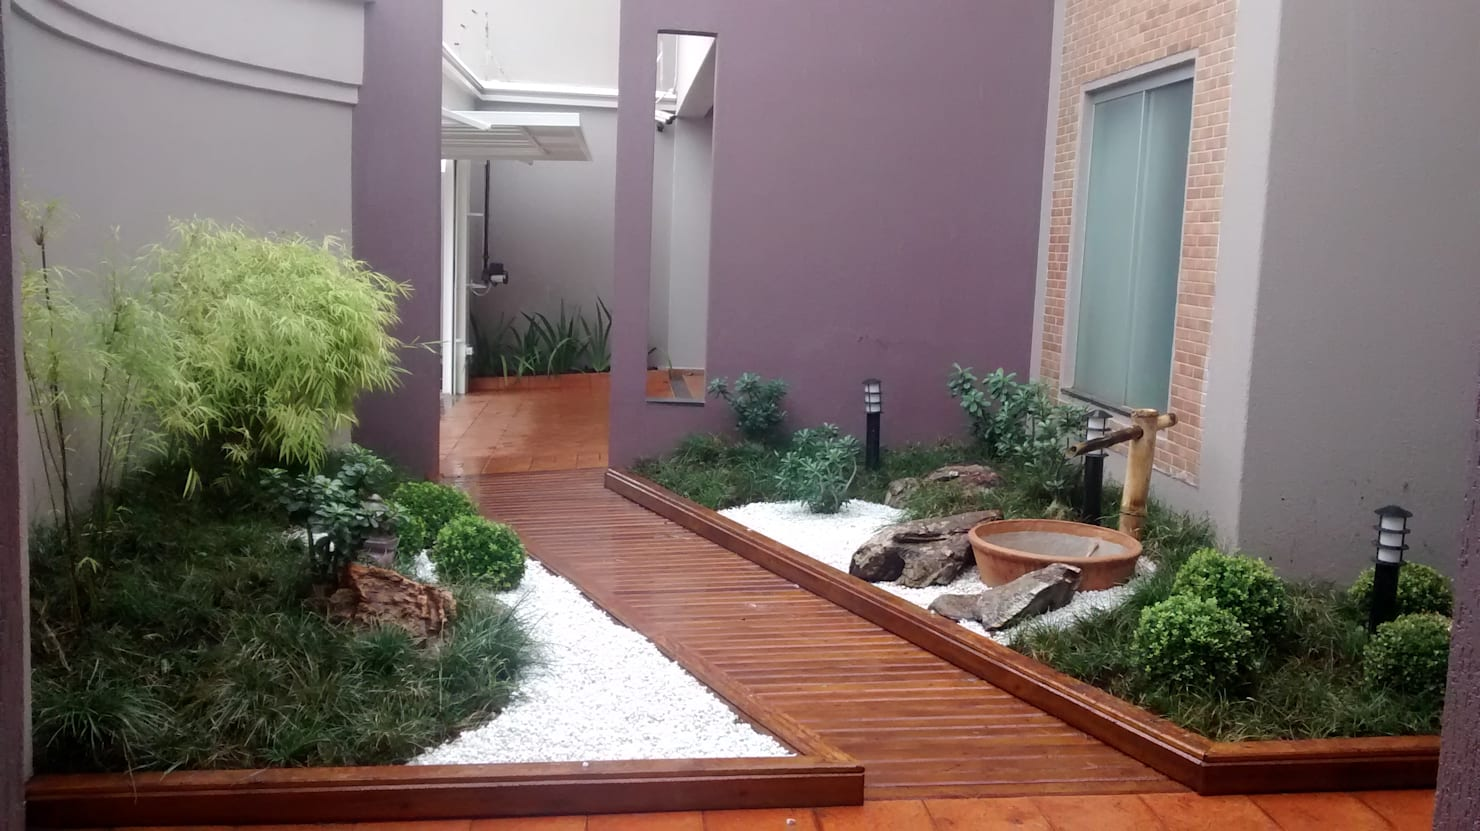 15 beautiful small gardens under 8sqm for you to relax in